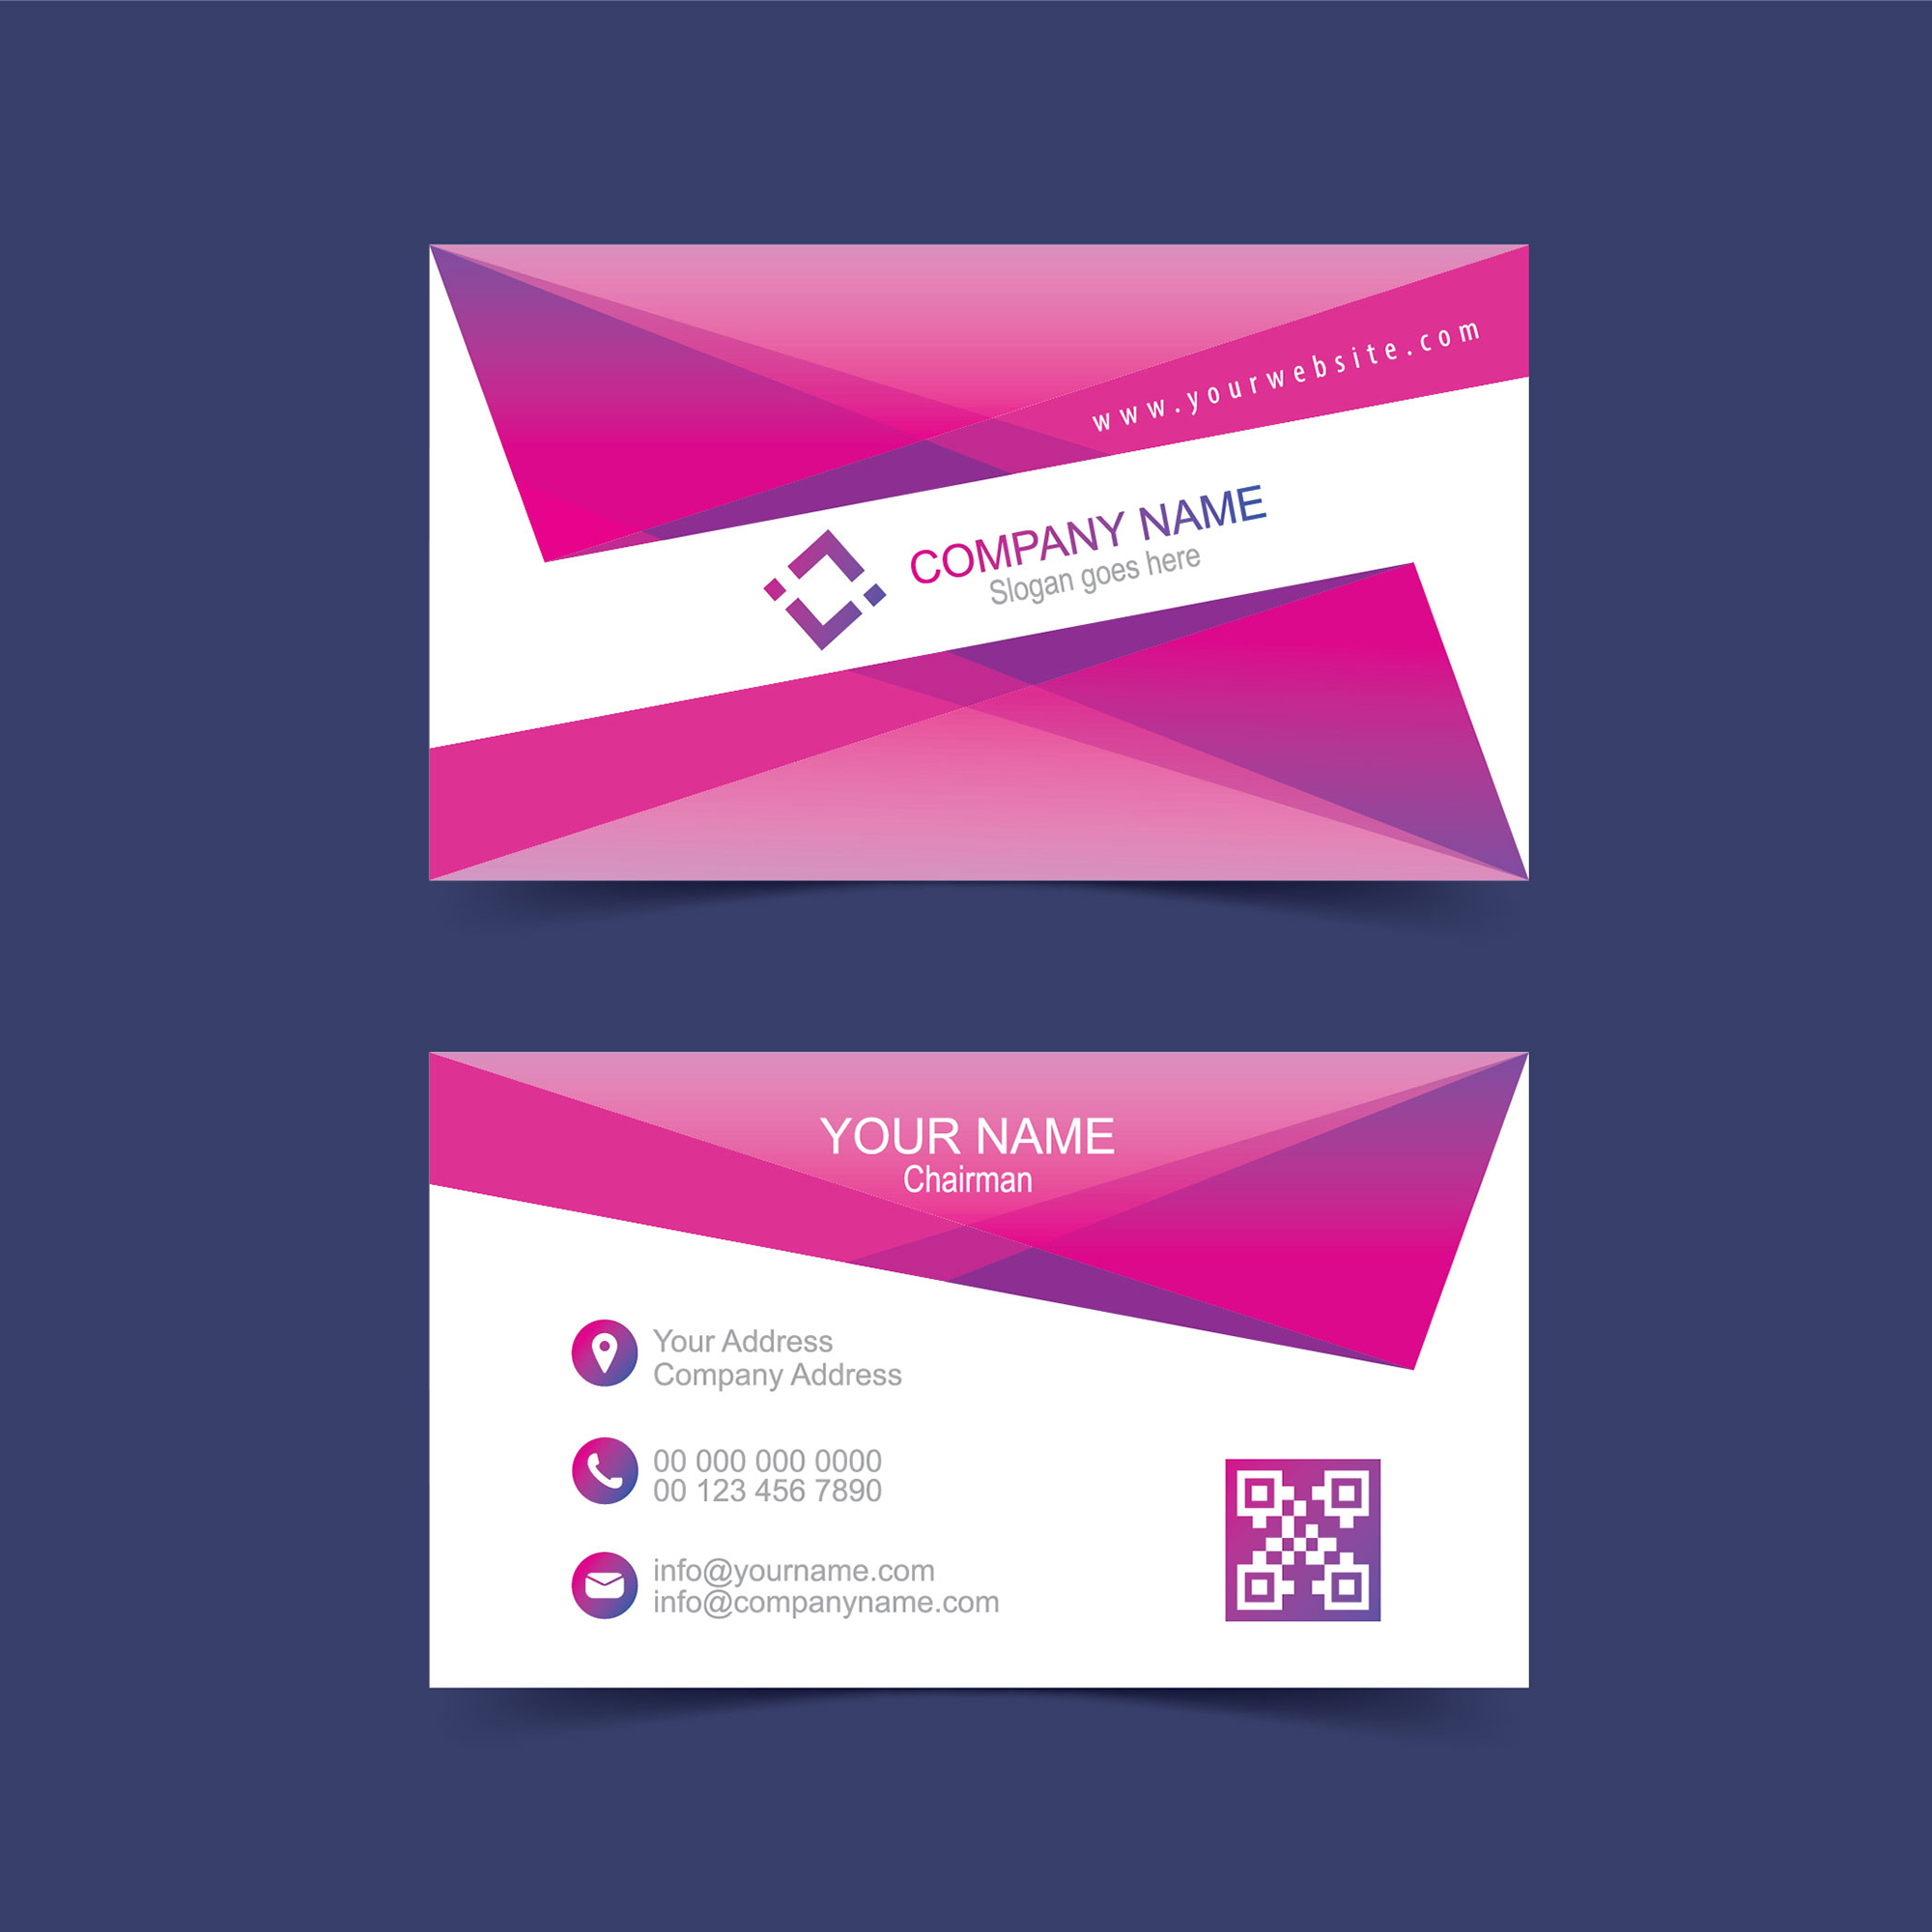 Modern visiting card design free download wisxi business card business cards business card design business card template design templates flashek Image collections